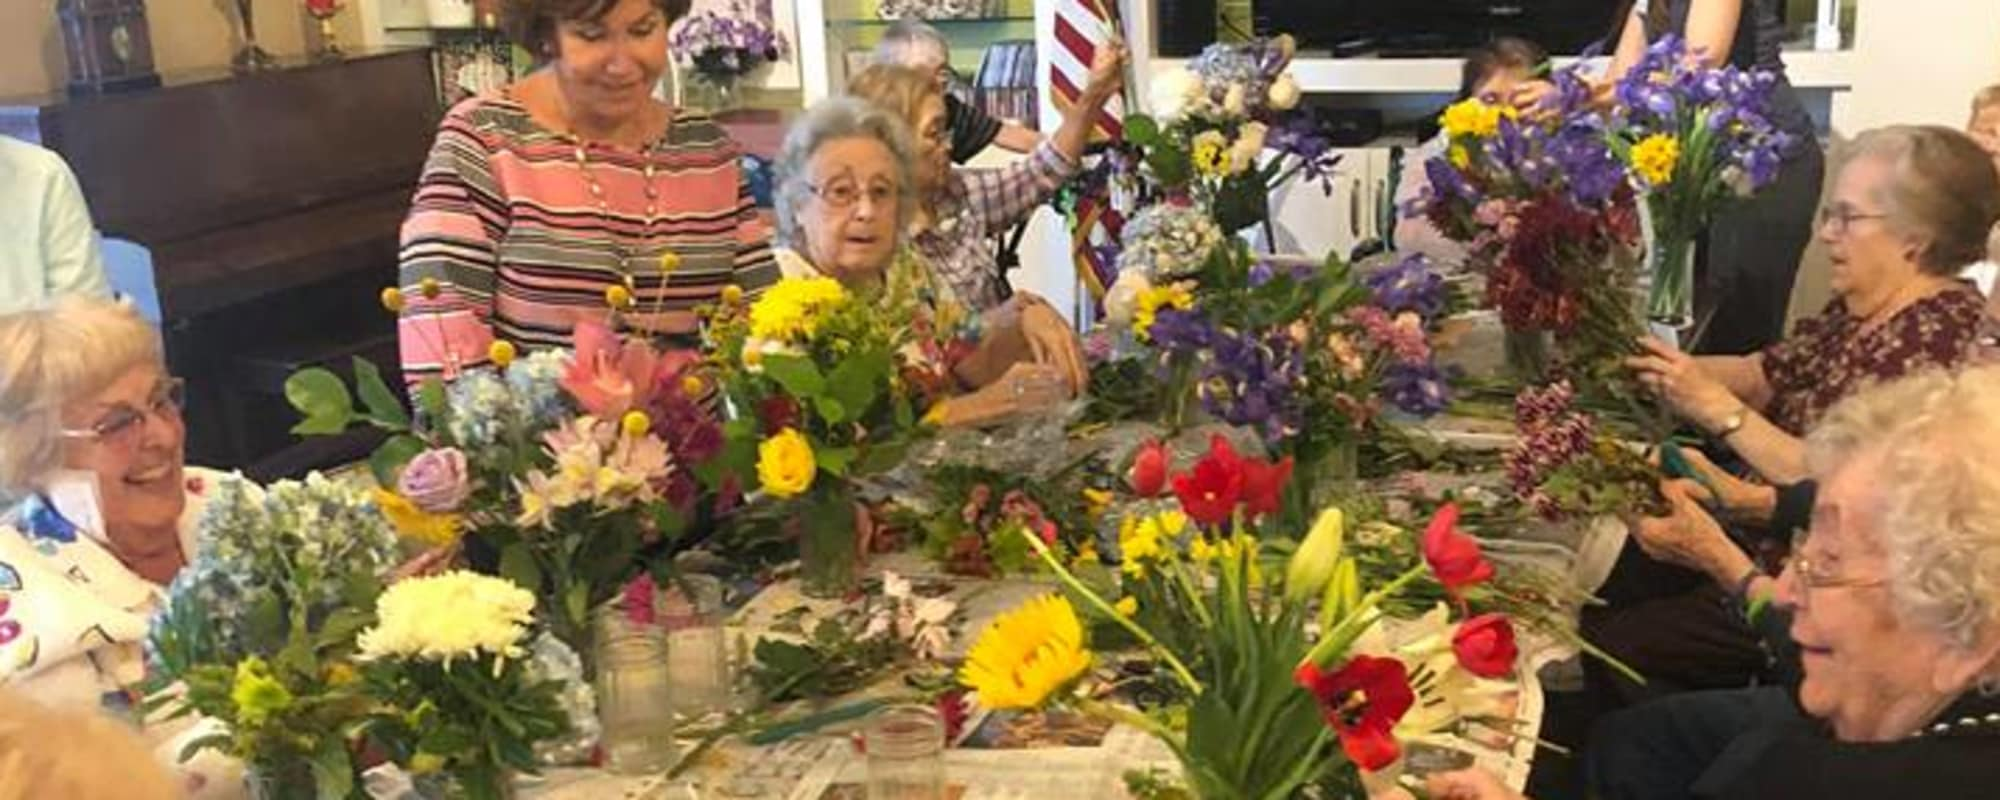 Making Bouquets at Huntington Terrace in Huntington Beach, California